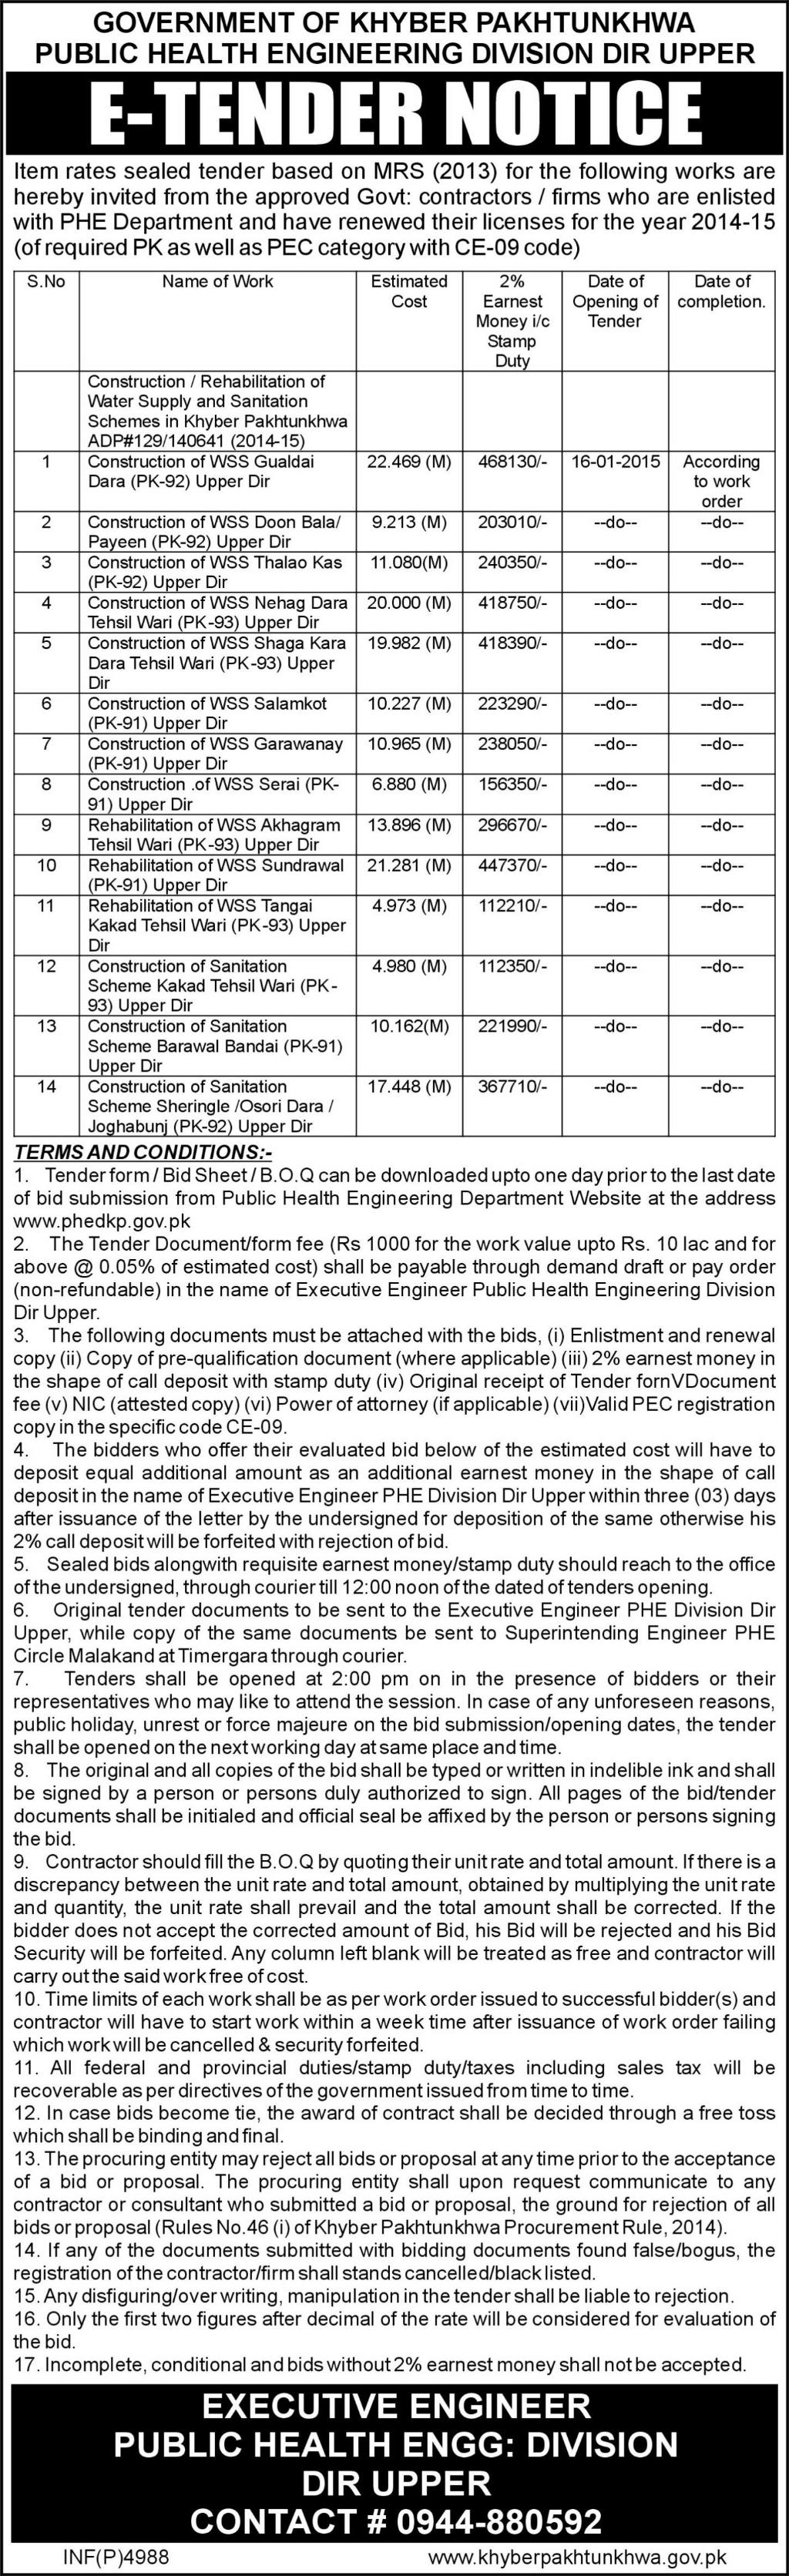 E-Tender Notice - Public Health Engineering Division Dir Upper